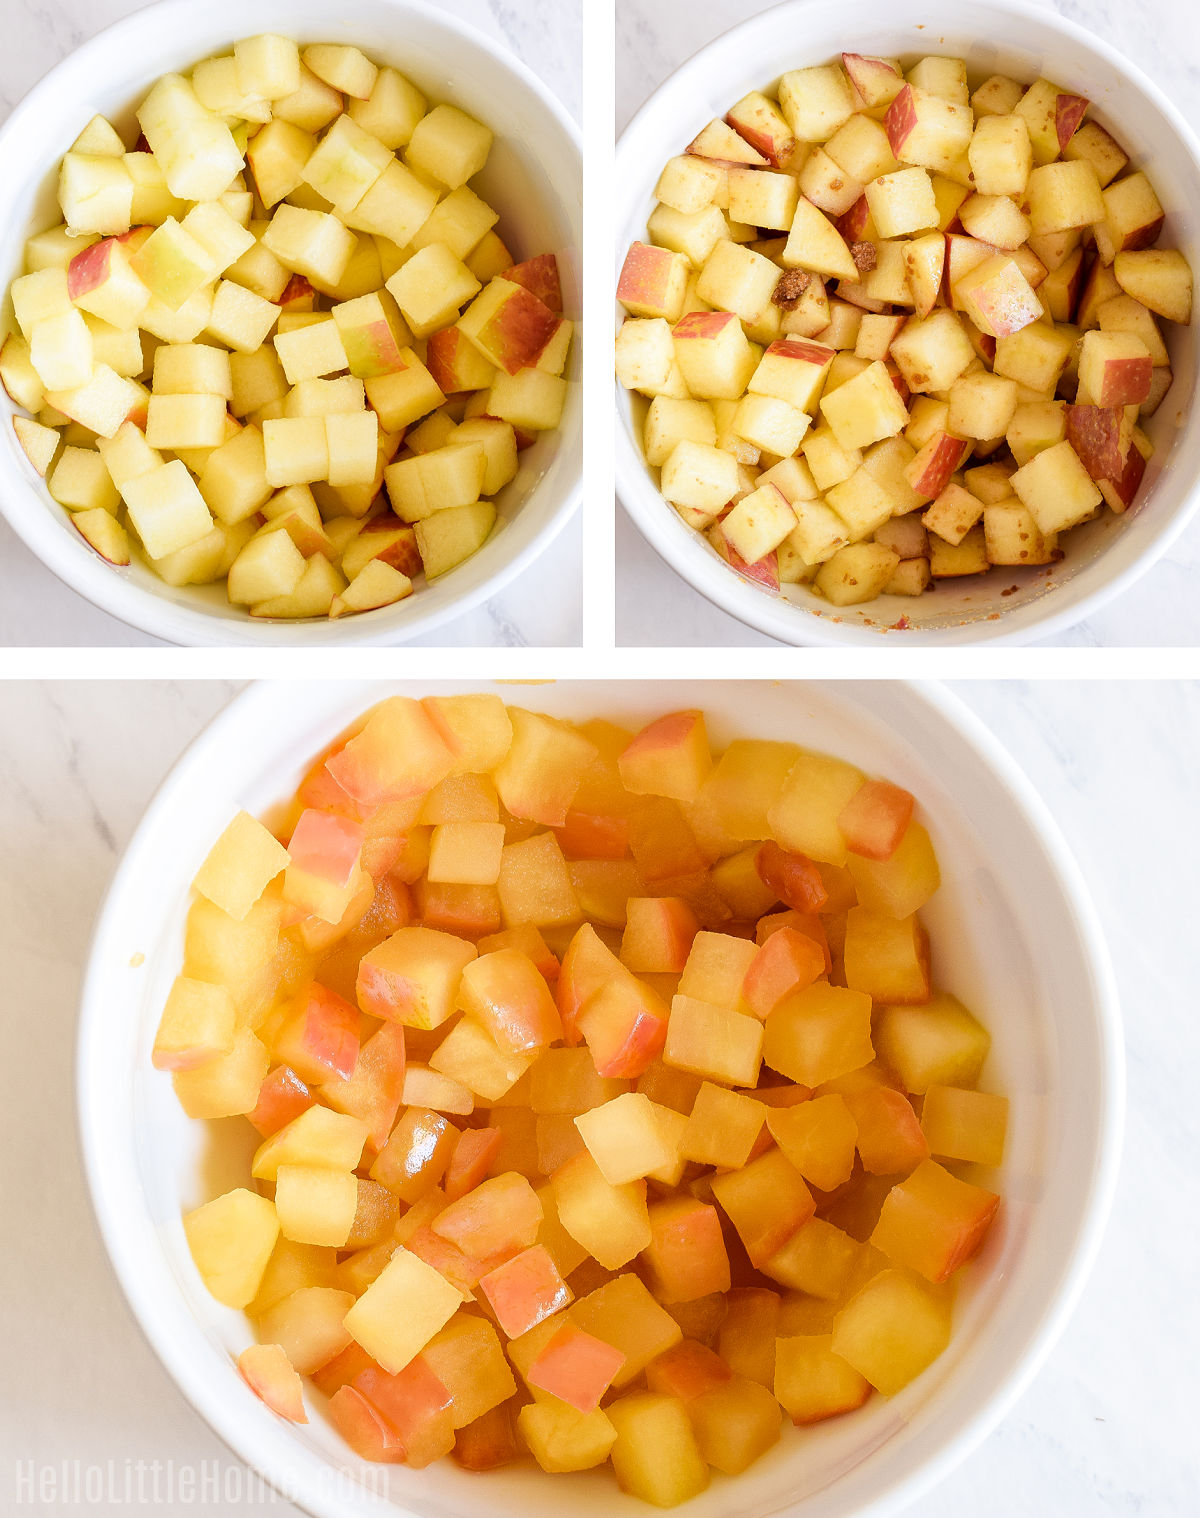 A photo collage showing chopped apples in a bowl, after mixing with brown sugar, and after being cooked.